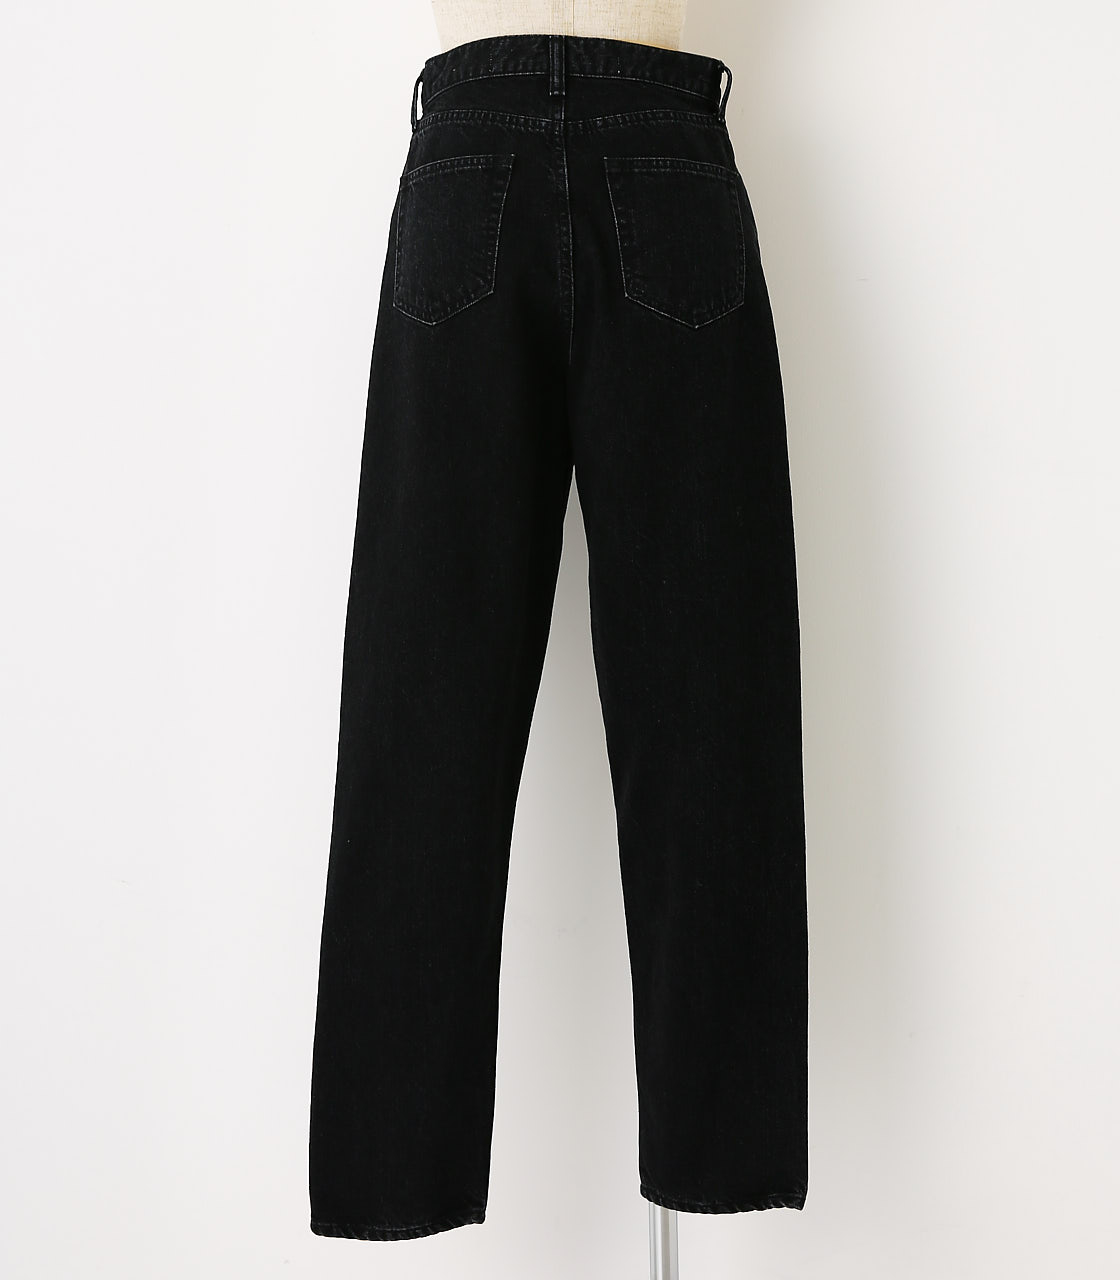 BLACK BY MOUSSY(ブラックバイマウジー) |JAVA black denim